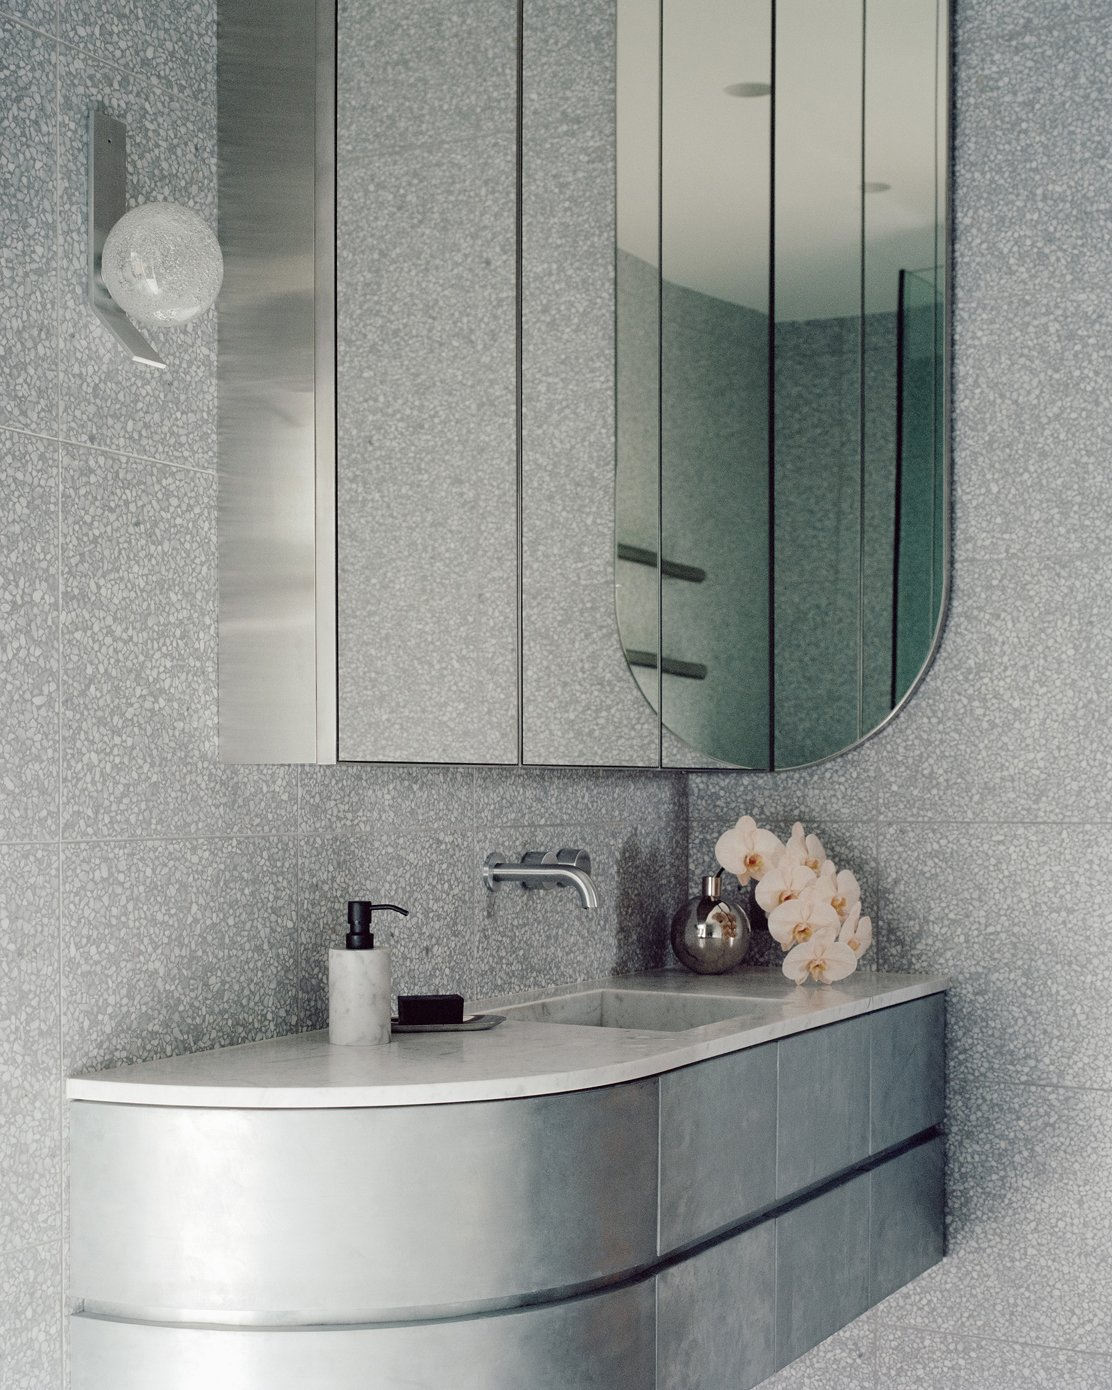 Bath Room, Marble Counter, Accent Lighting, Undermount Sink, Stone Tile Wall, and Wall Lighting  Photo 14 of 16 in A Revamped Terrace House in Sydney Is an Audiophile's Dream